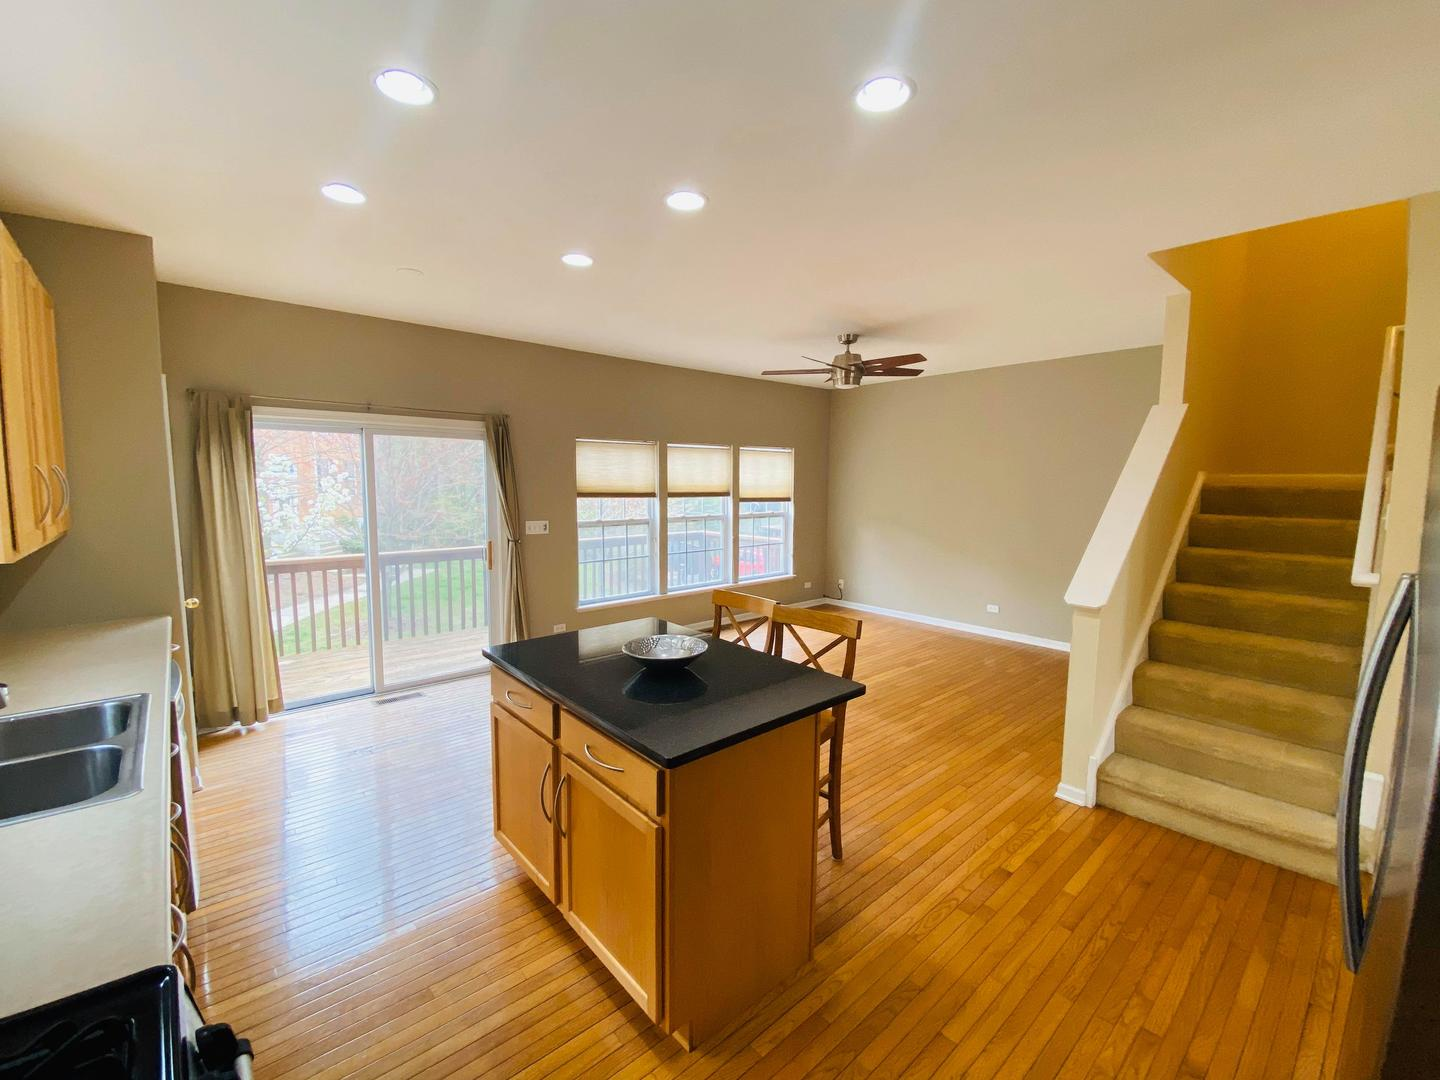 170 WILLOW 1501D, Willow Springs, Illinois, 60480